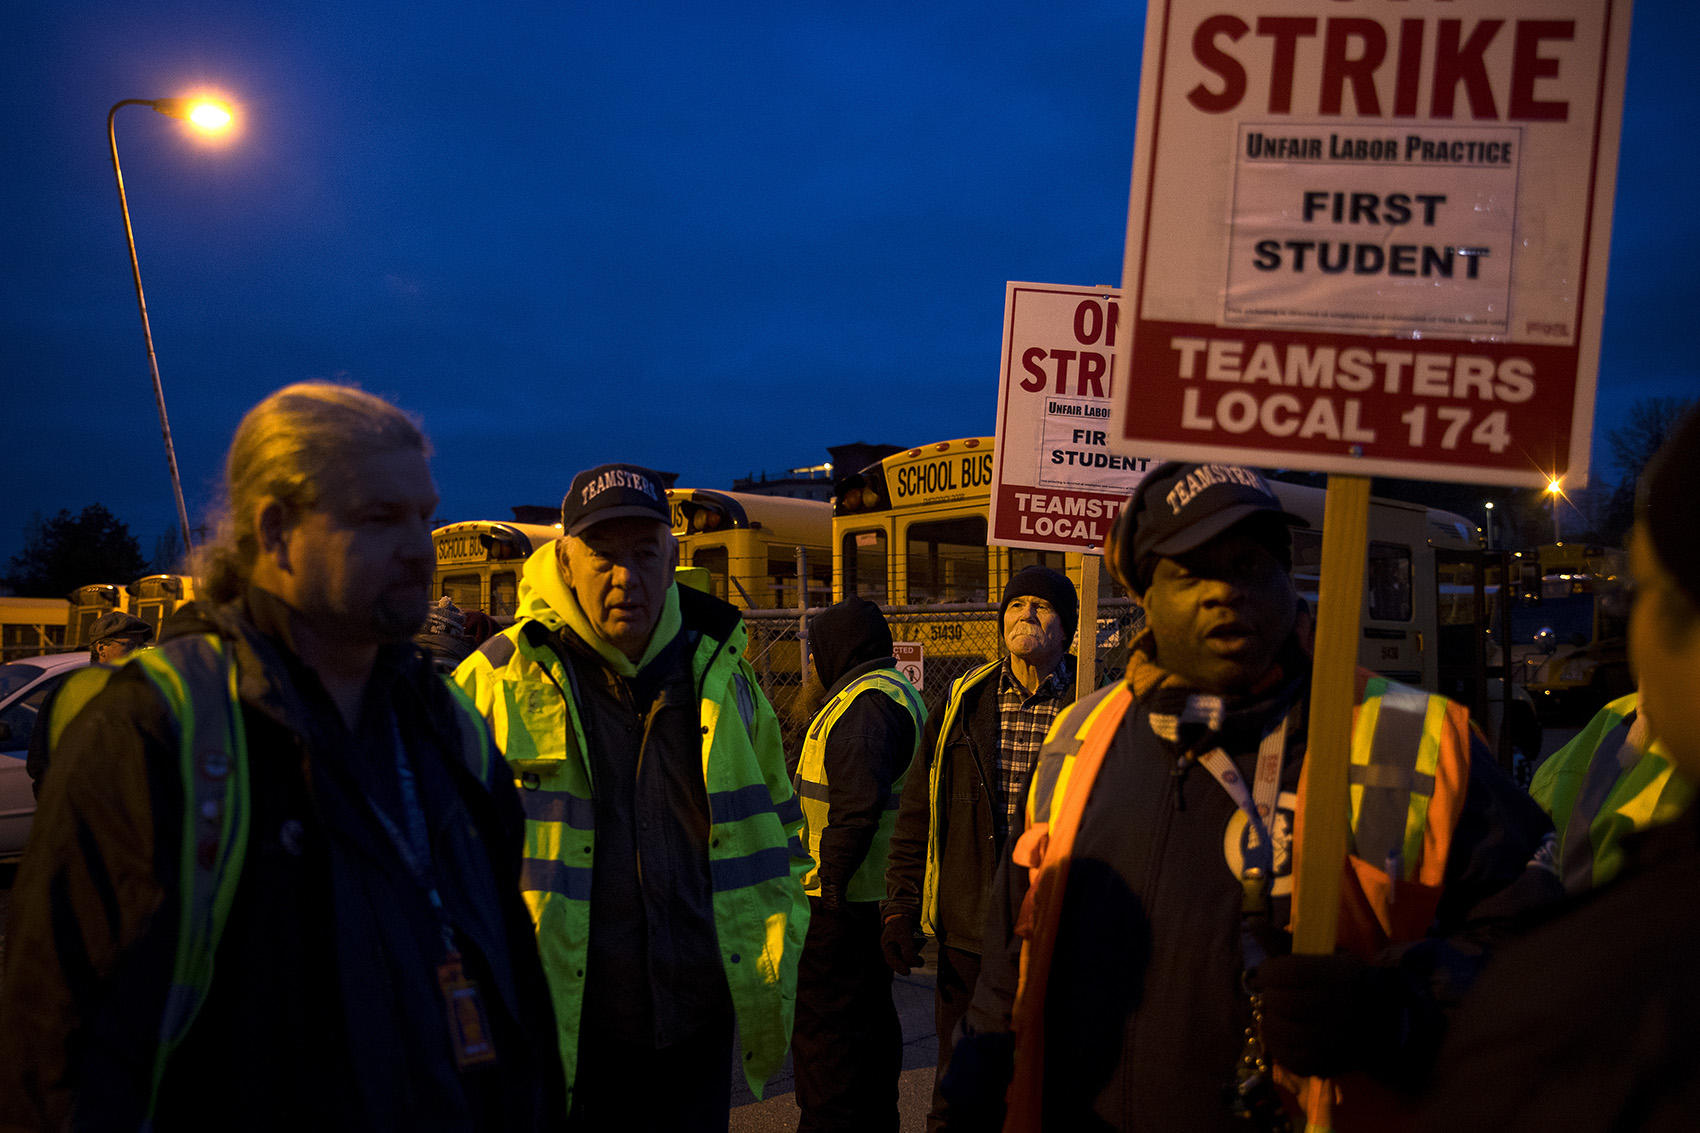 Seattle school-bus driver strike could last for days, union says